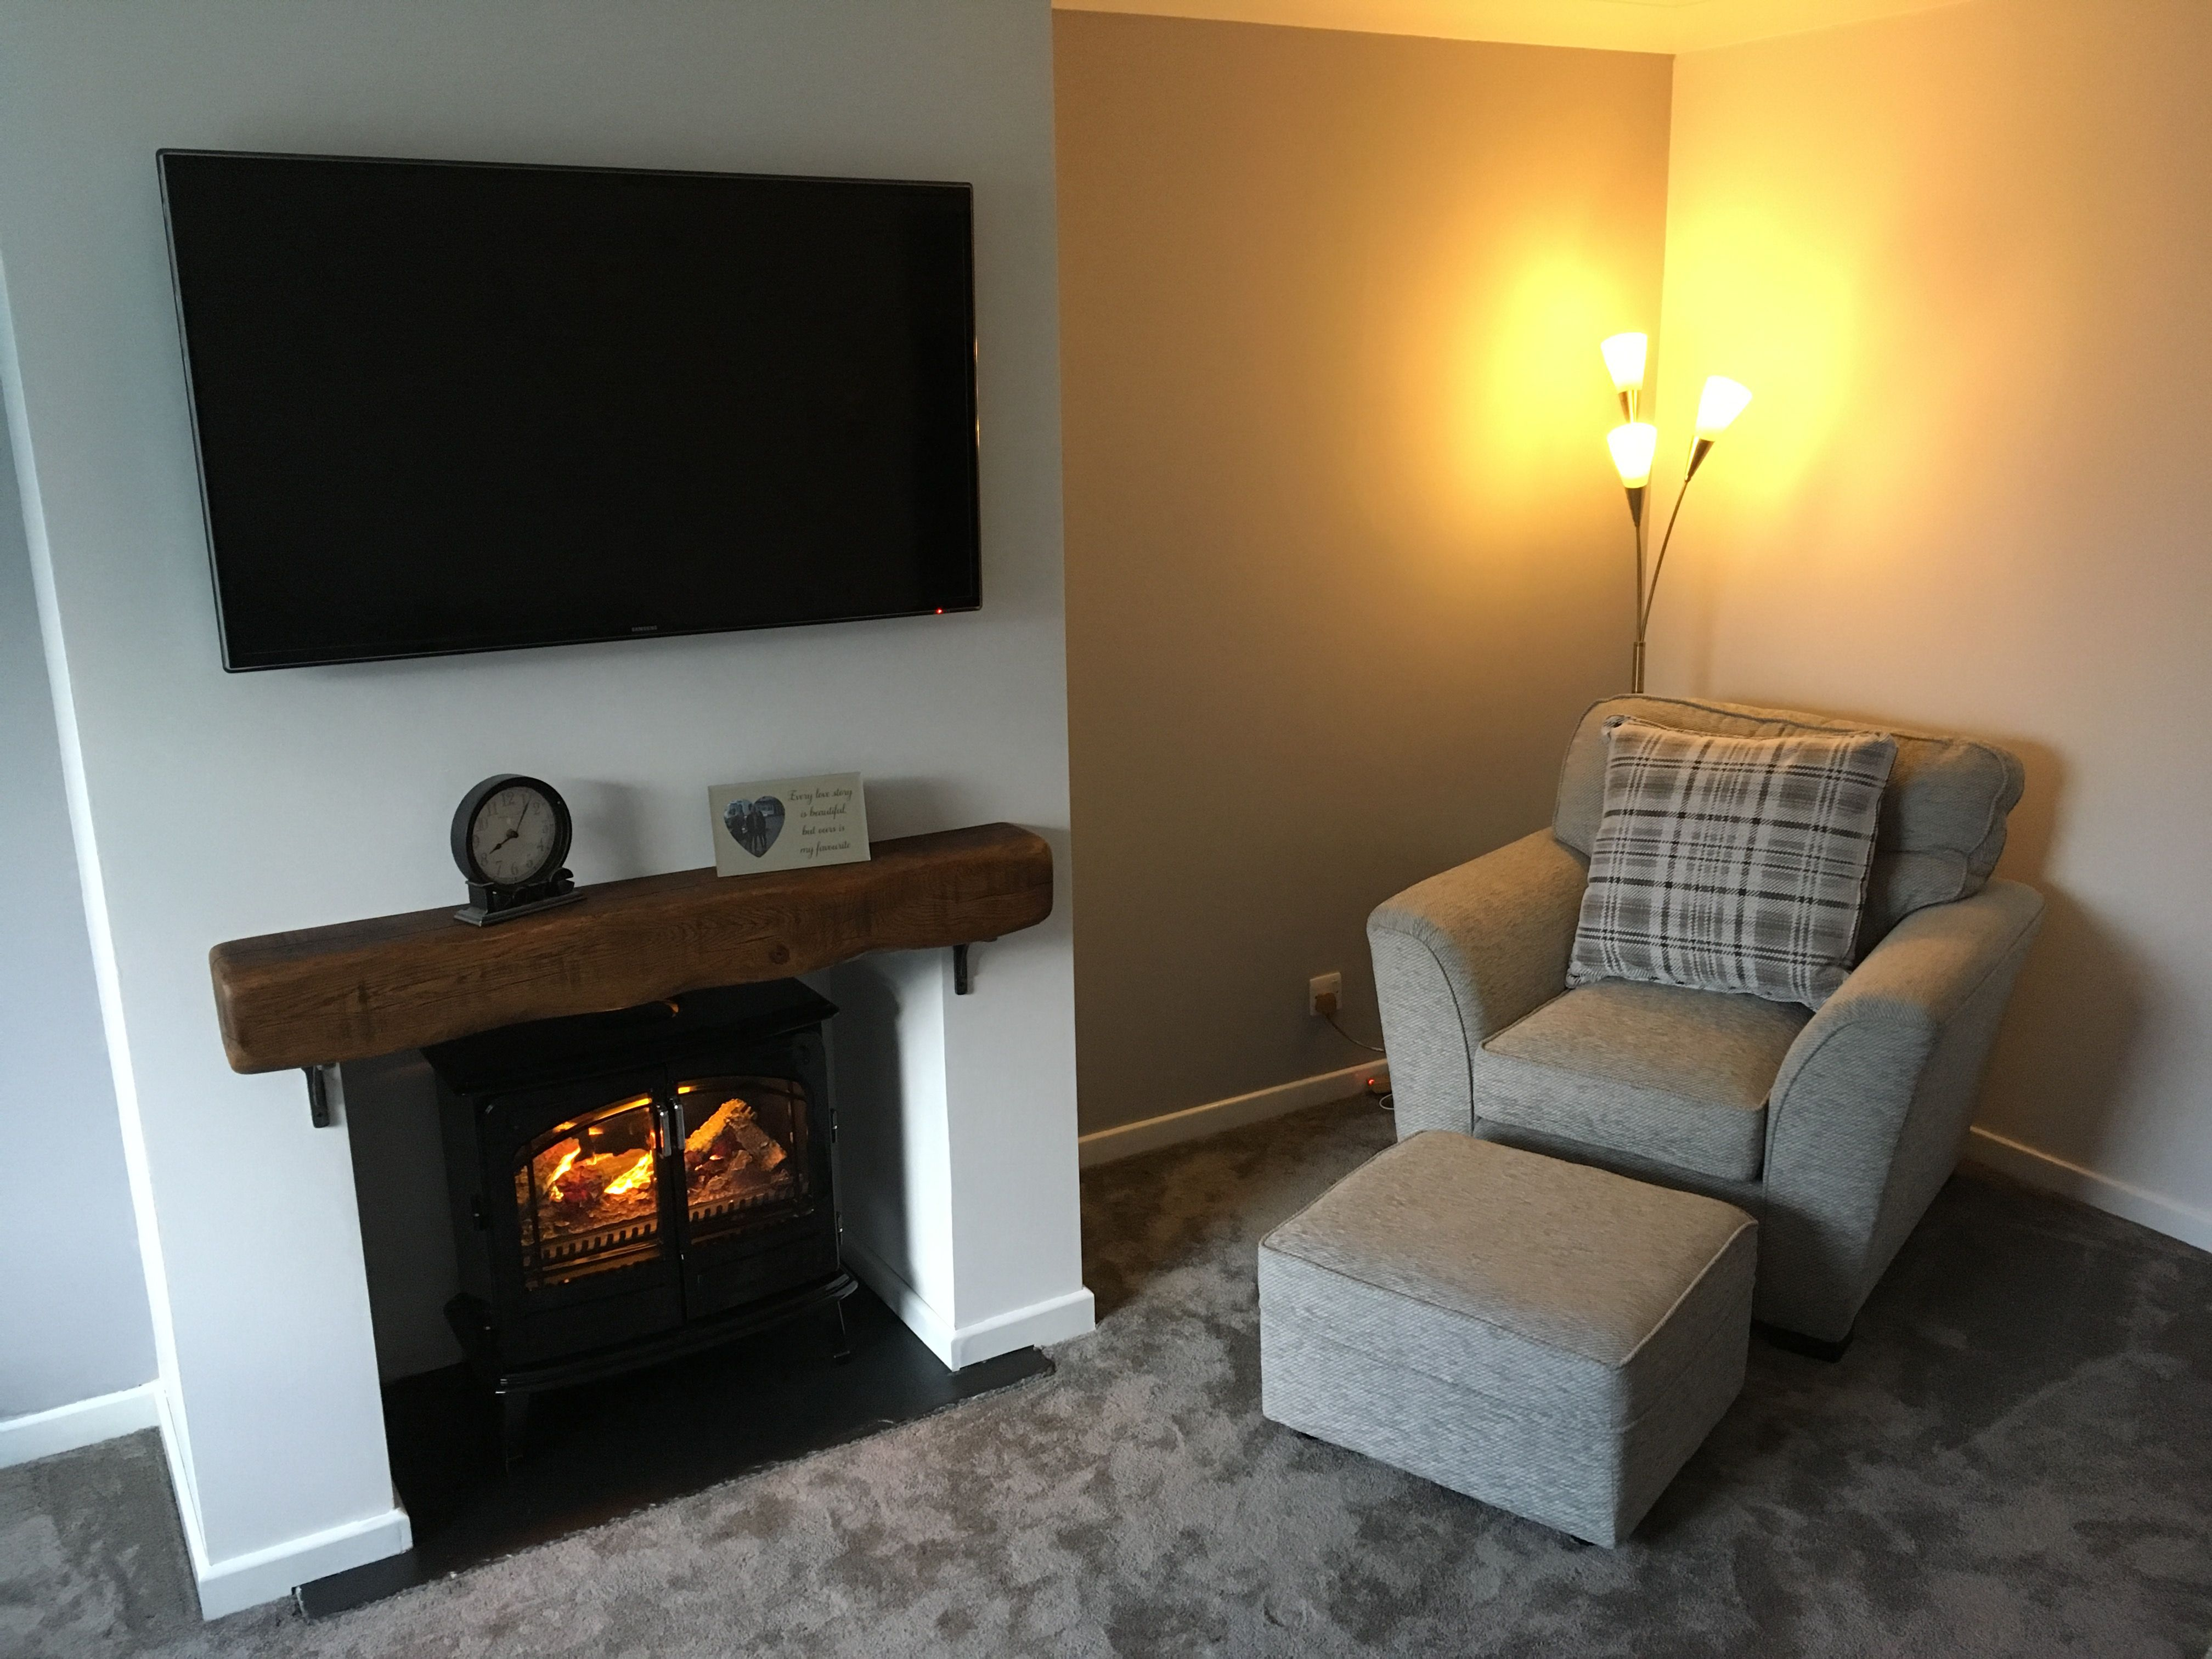 Grey living room with oak beam mantle fireplace with wall mounted TV